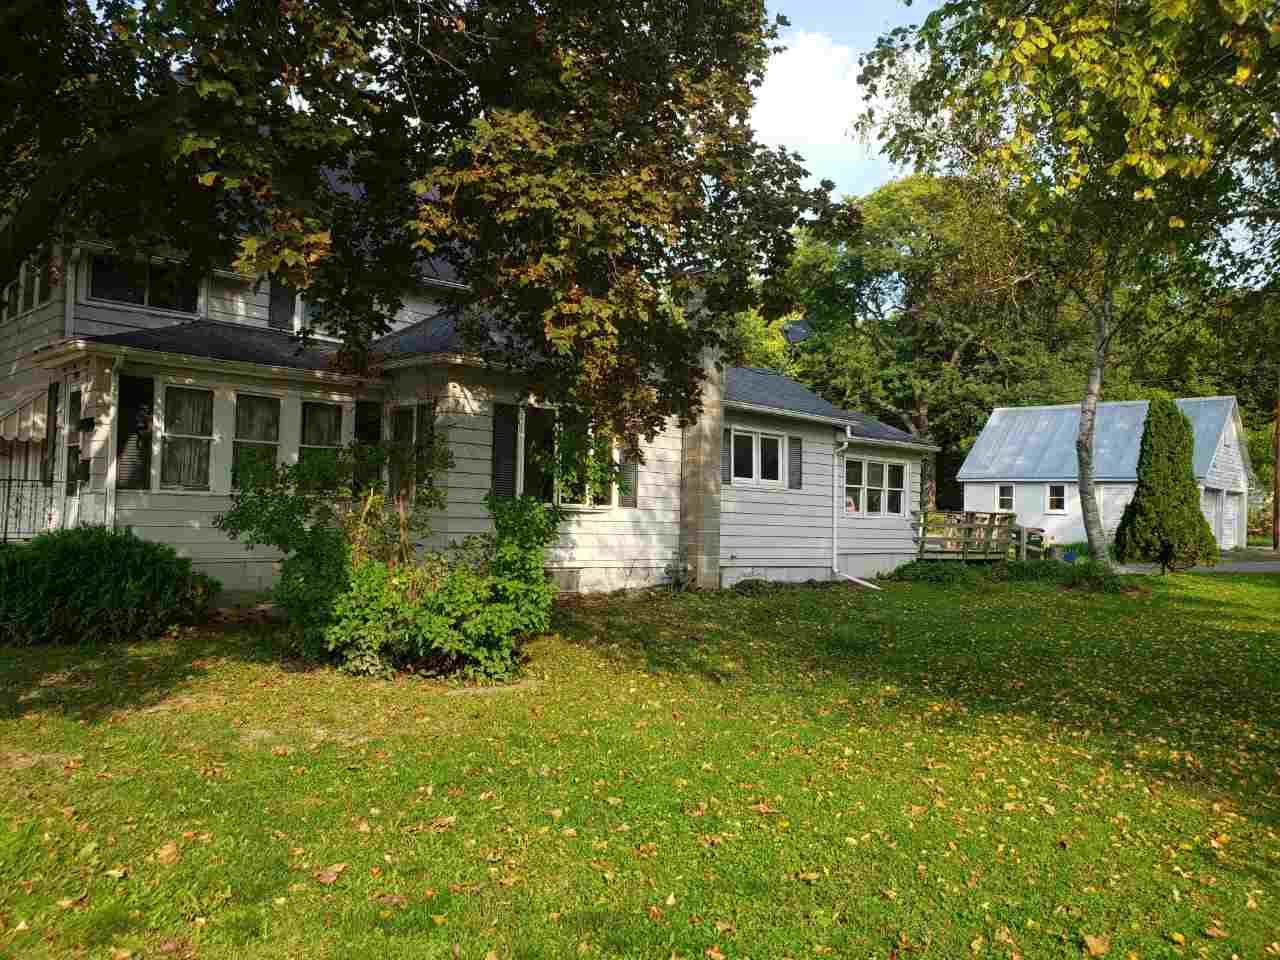 329 8th St, Baraboo, WI 53913 - #: 1894146